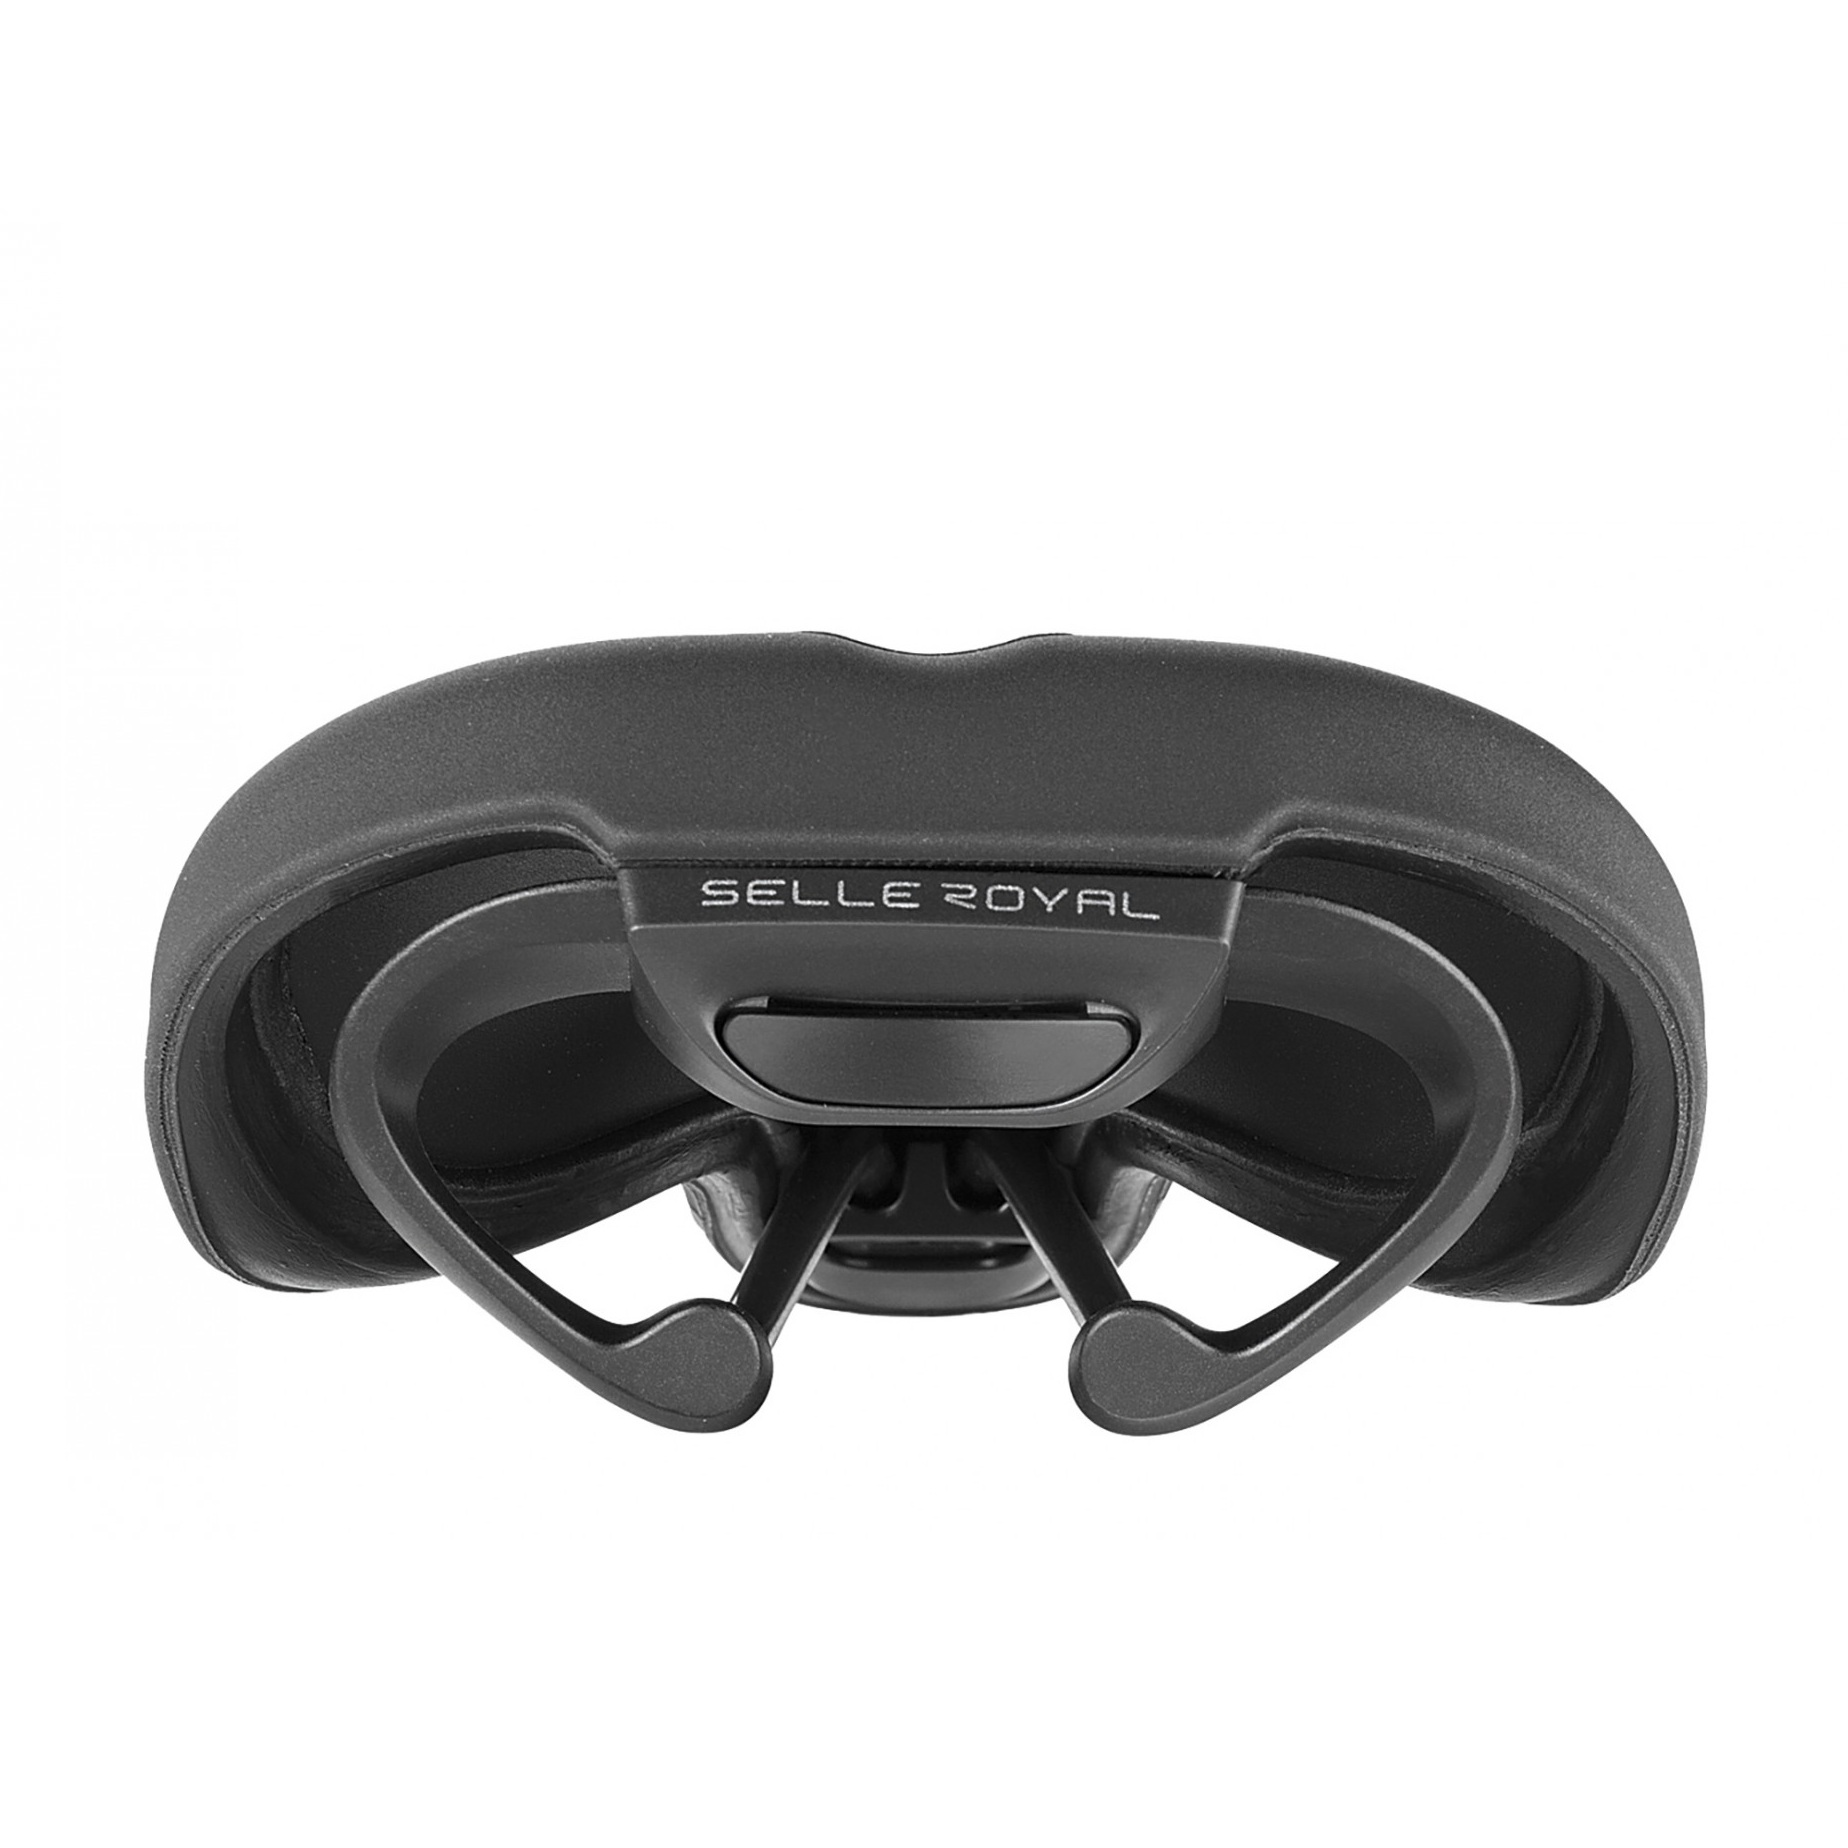 Saddles Selle Royal Scienta Moderate M2 Bike Accesories Baselayer Respiro